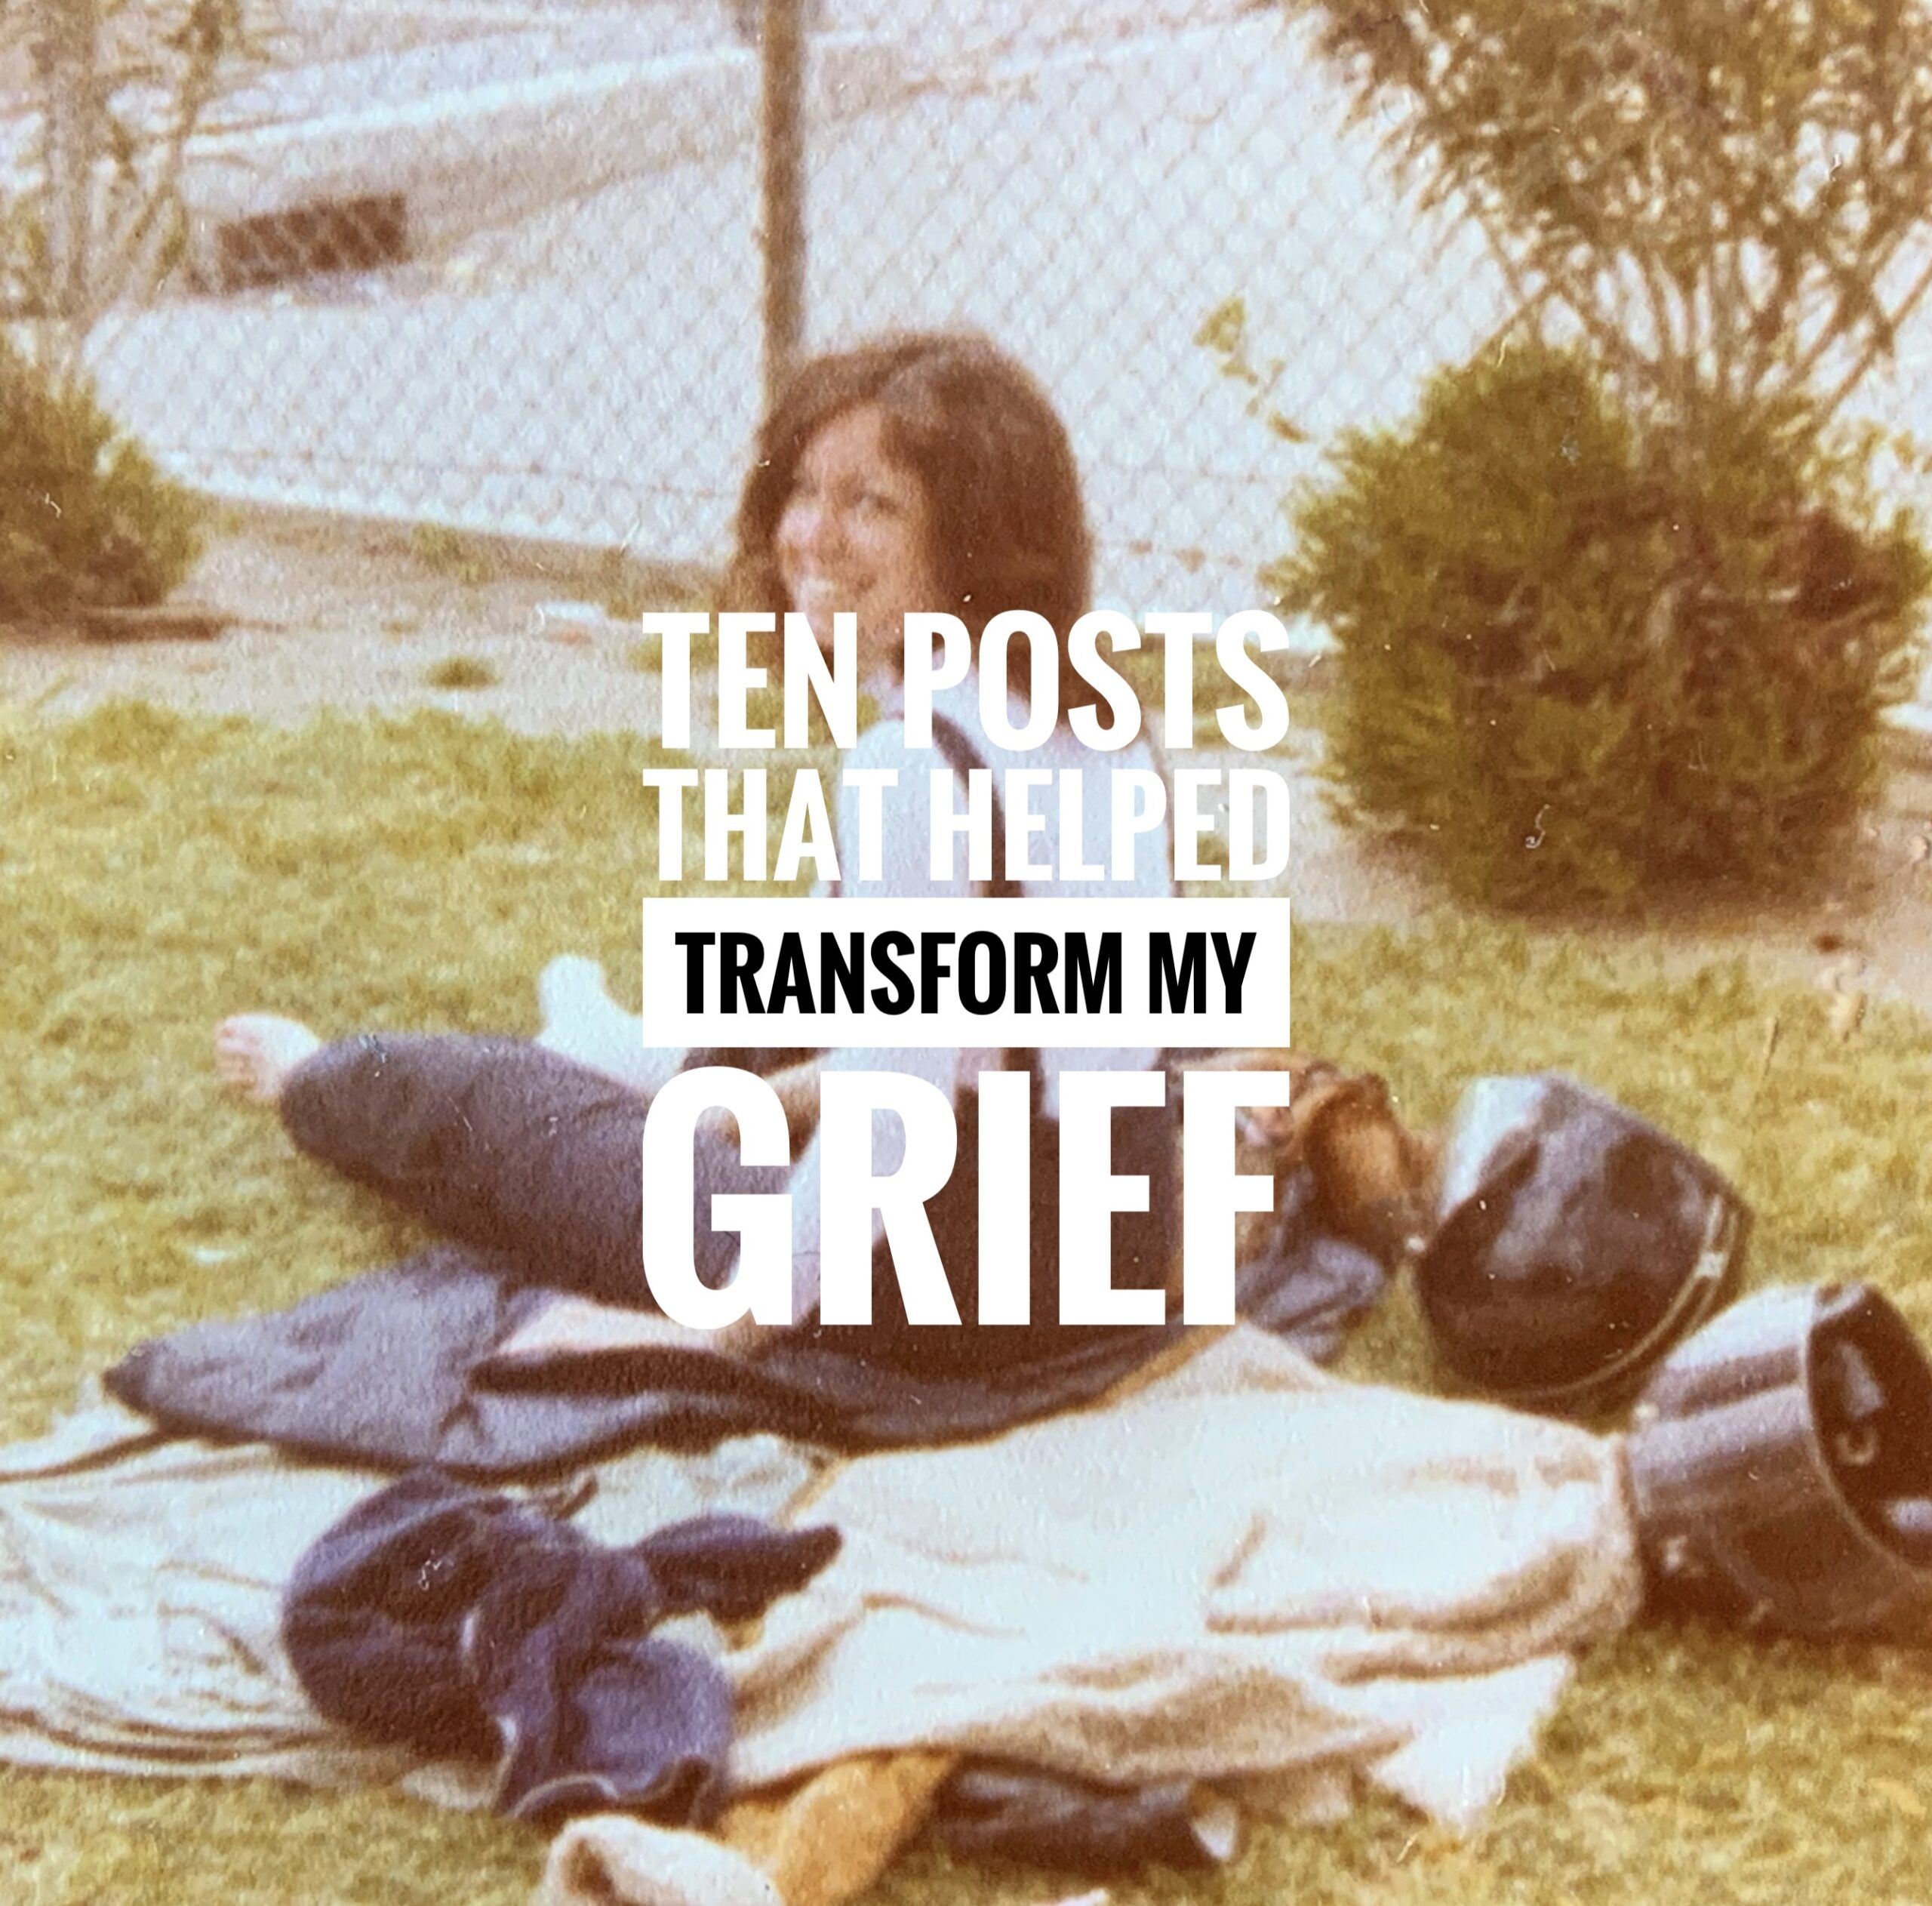 10 Posts That Helped Transform My Grief